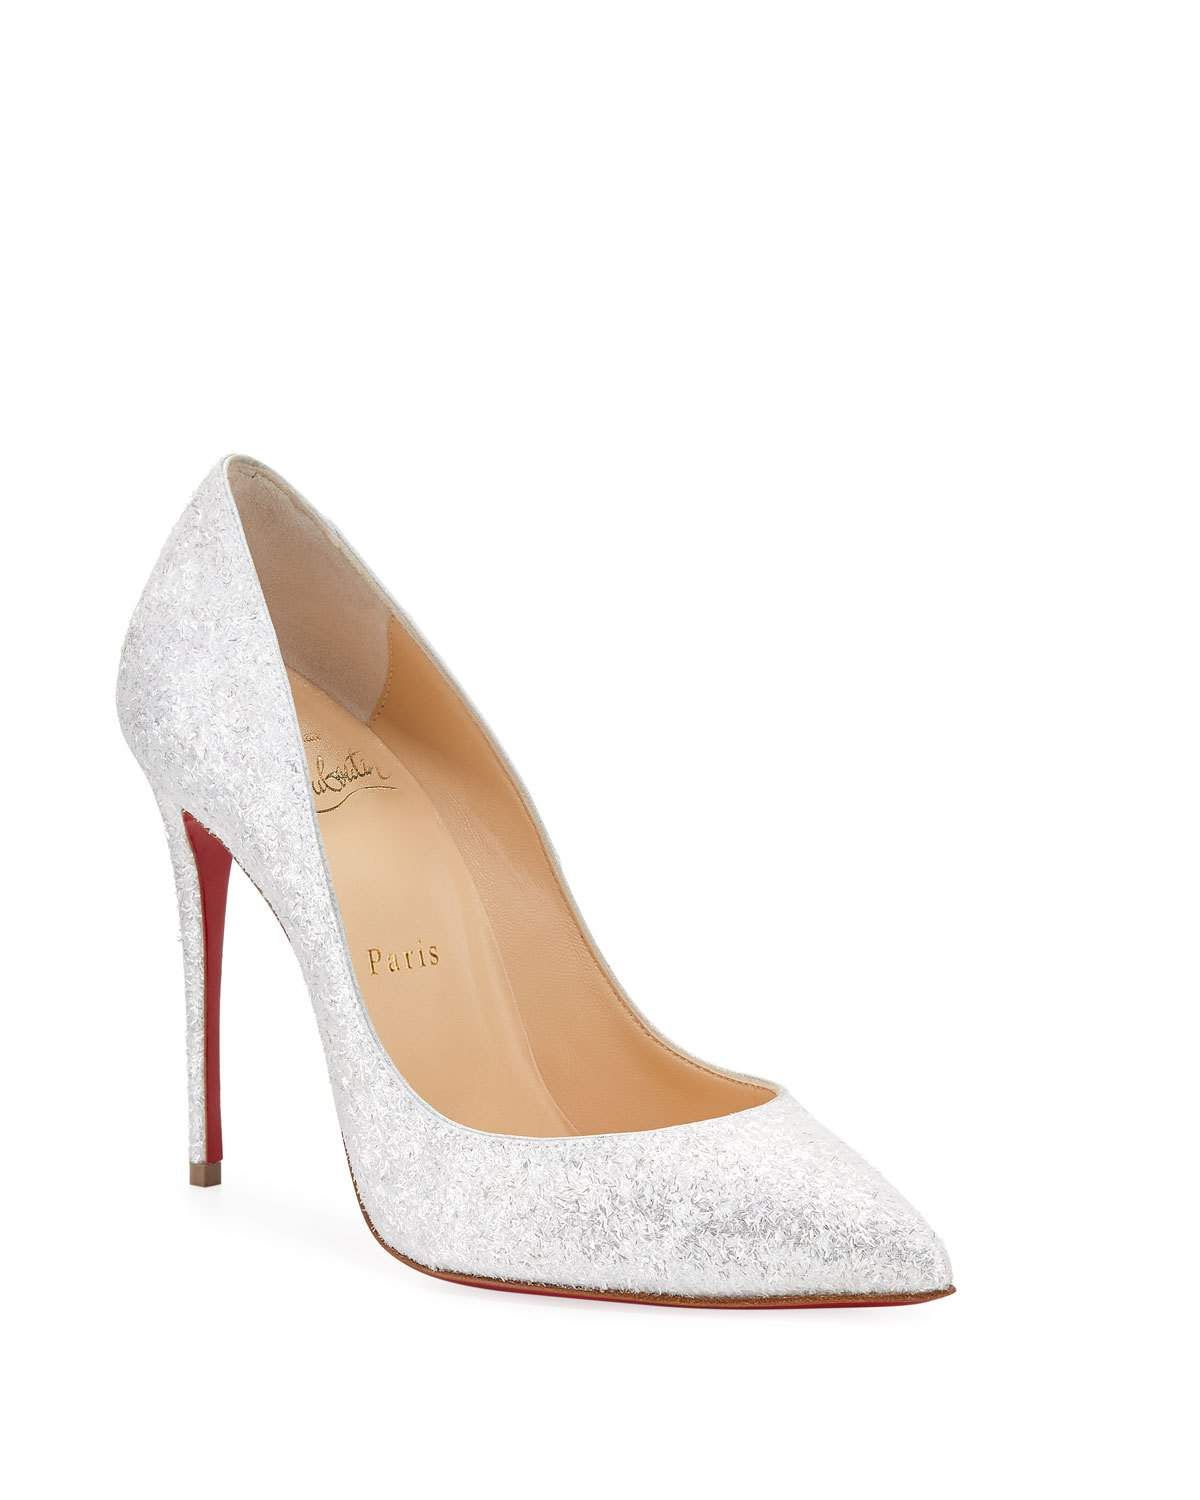 uk availability 0c7b5 ba181 Christian Louboutin Pigalle Follies 100mm Glitter Red Sole ...